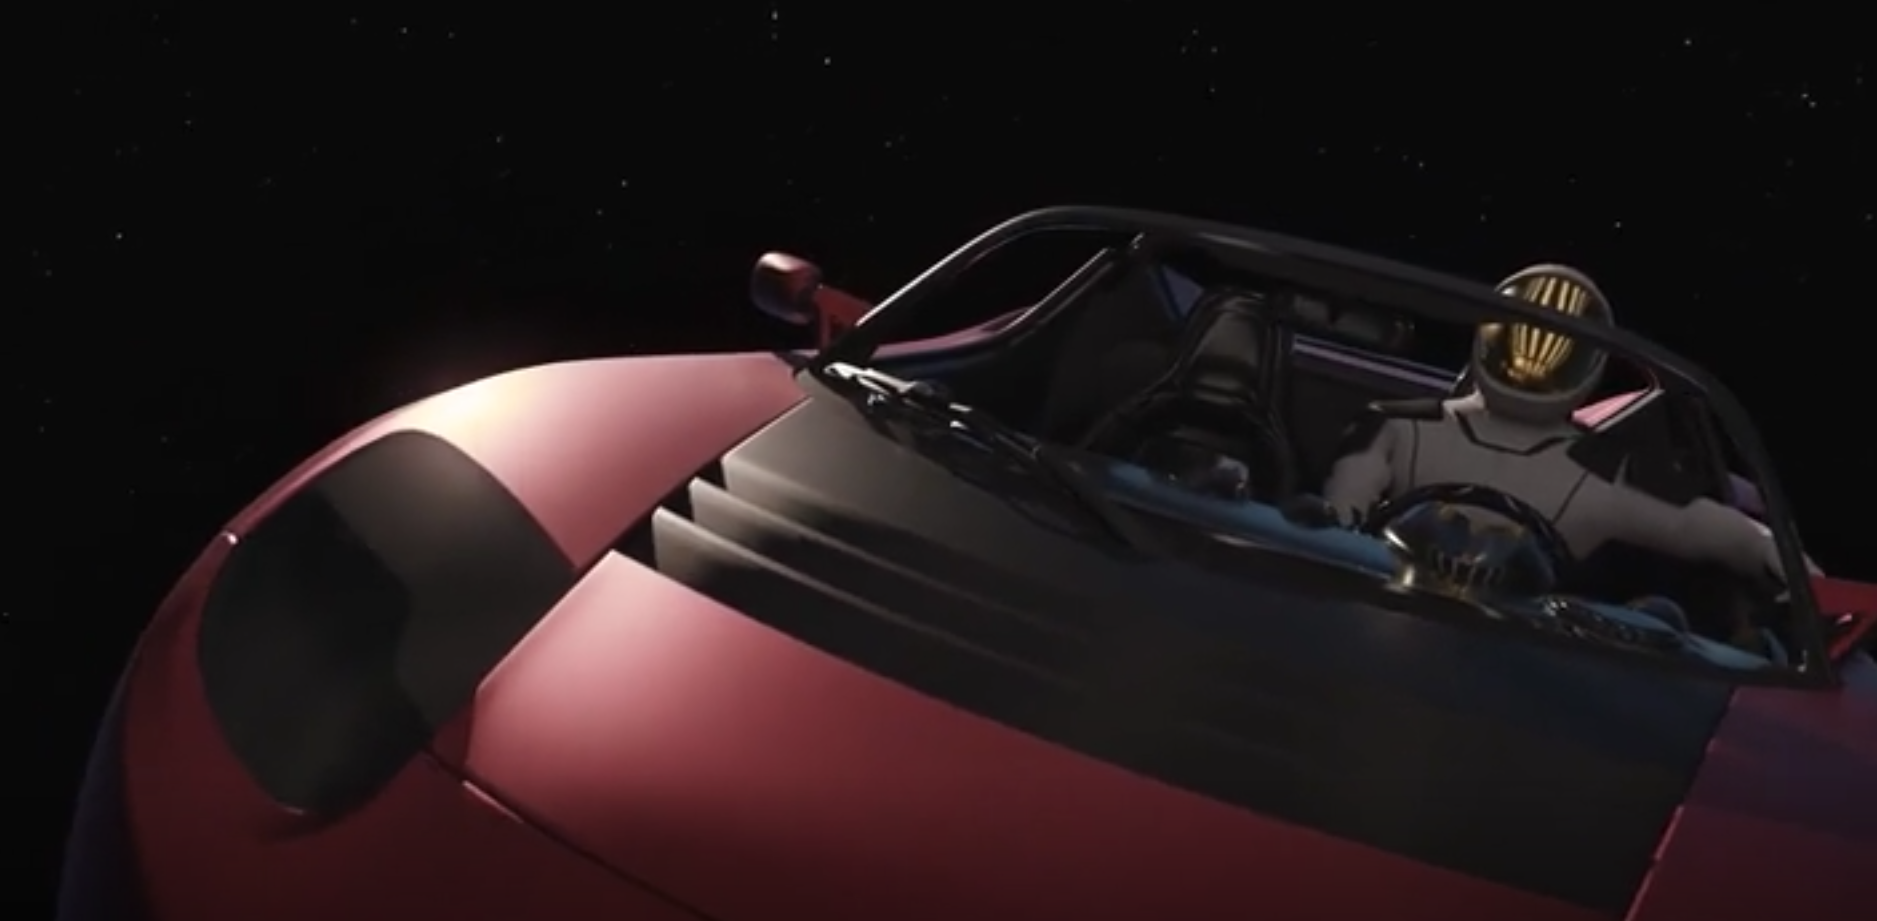 Tesla SpaceX Driver